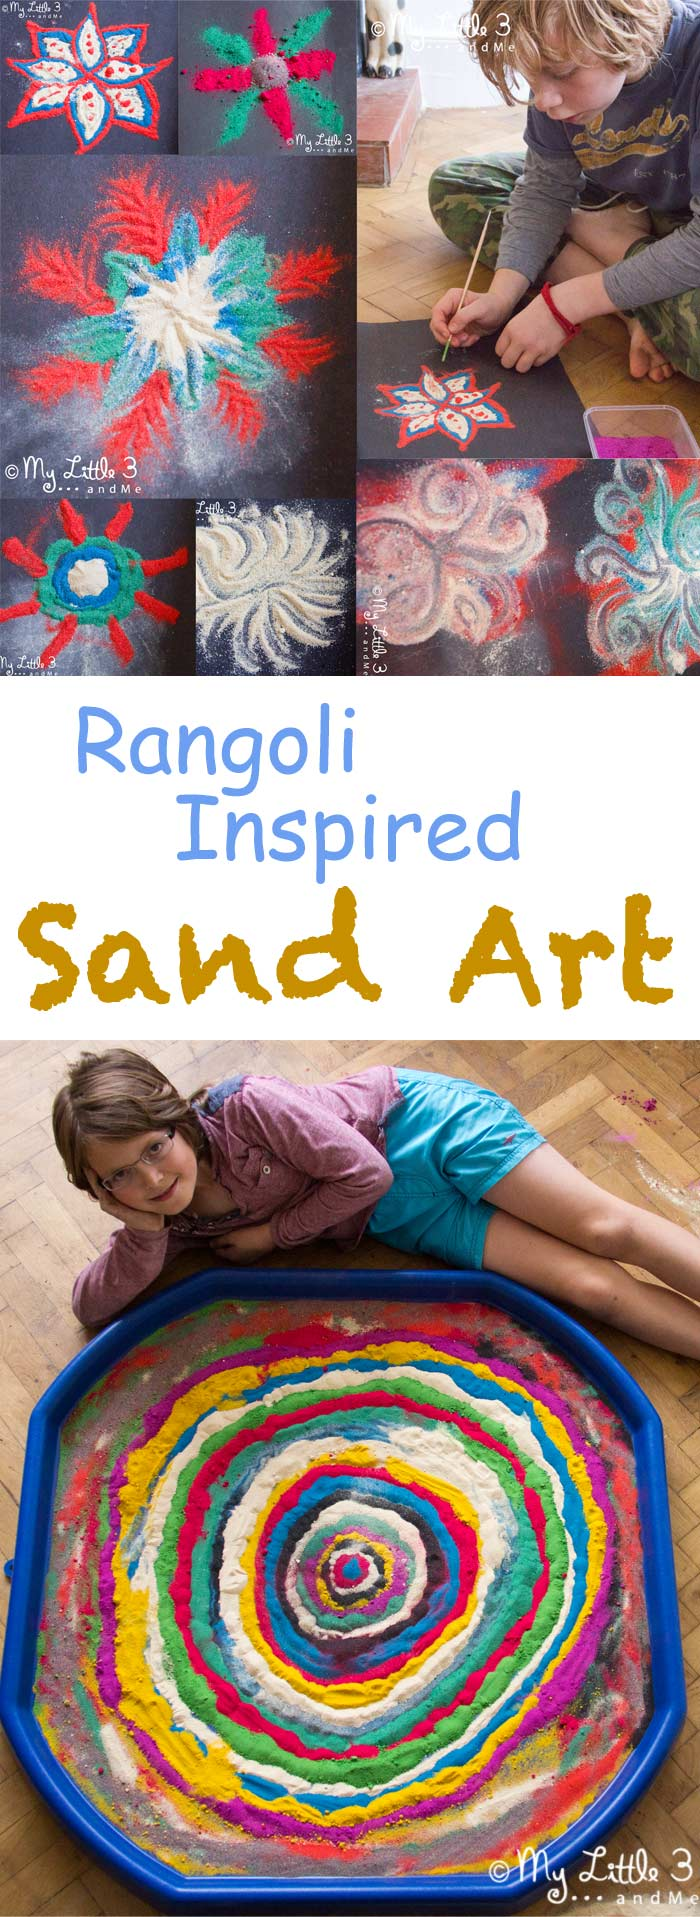 I hope this post will get you itching to try some sand art with your children. This has got to be my all time favourite activity so far! Rangoli inspired sand art was such a great avenue to explore transitory and collaborative art and for the children to experiment and develop confidence in their own artistic abilities. Take a peek...I think you'll love, love, love!